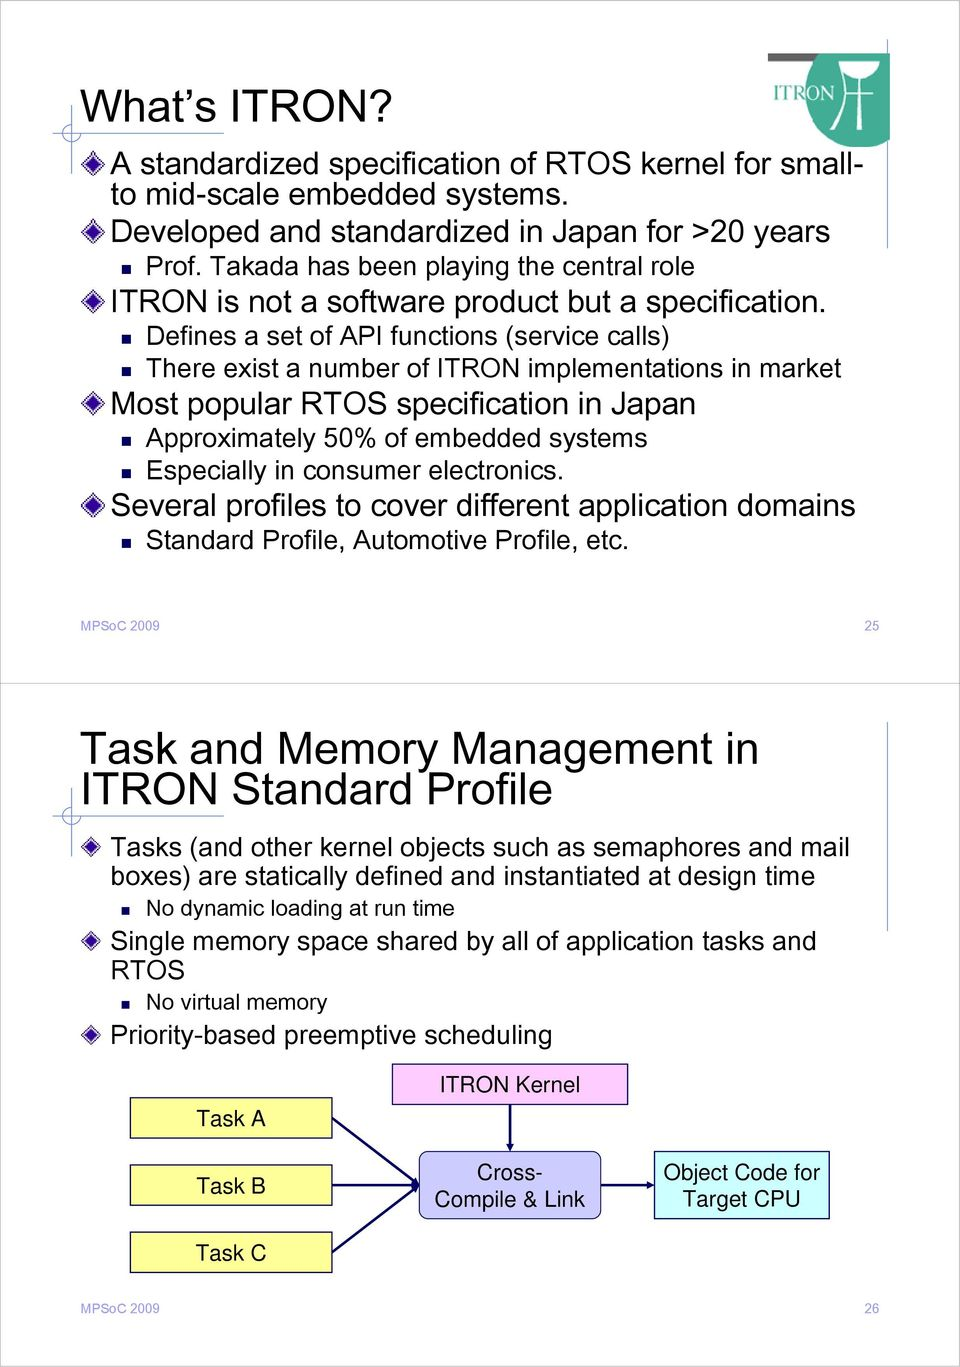 Defines a set of API functions (service calls) There exist a number of ITRON implementations in market Most popular RTOS specification in Japan Approximately 50% of embedded systems Especially in